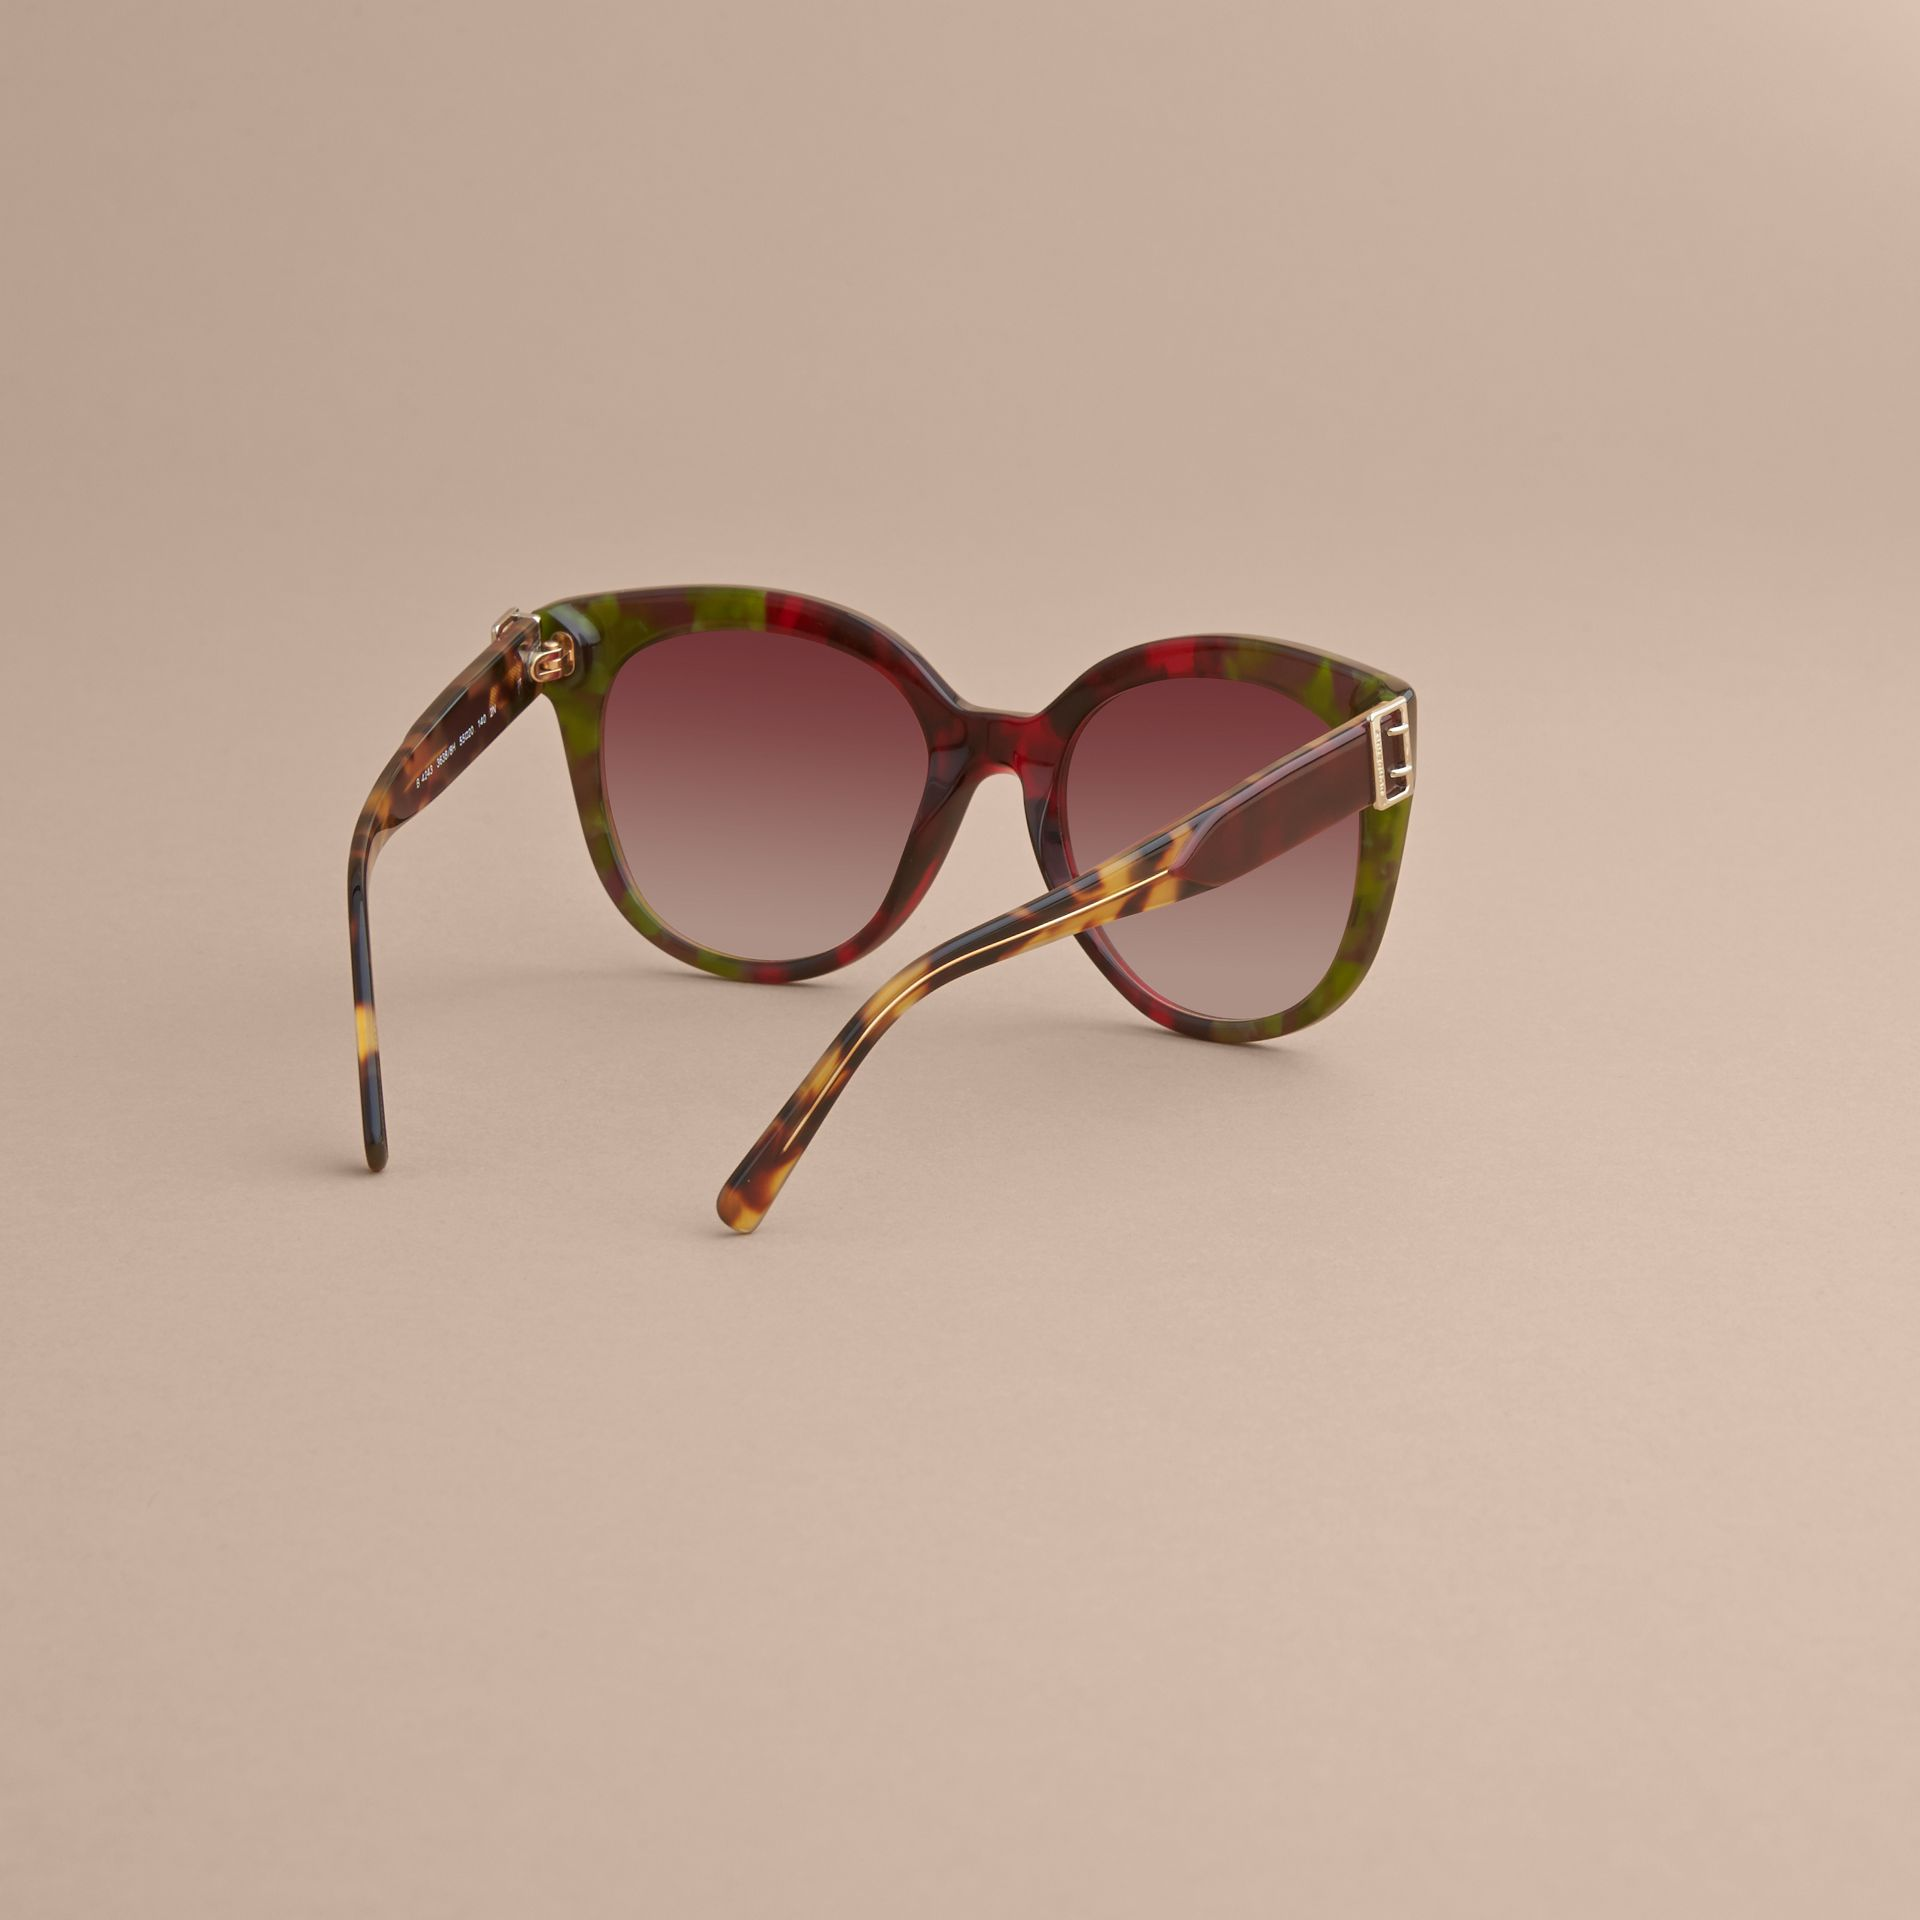 Buckle Detail Cat-eye Frame Sunglasses in Cardinal Red - Women | Burberry Singapore - gallery image 3